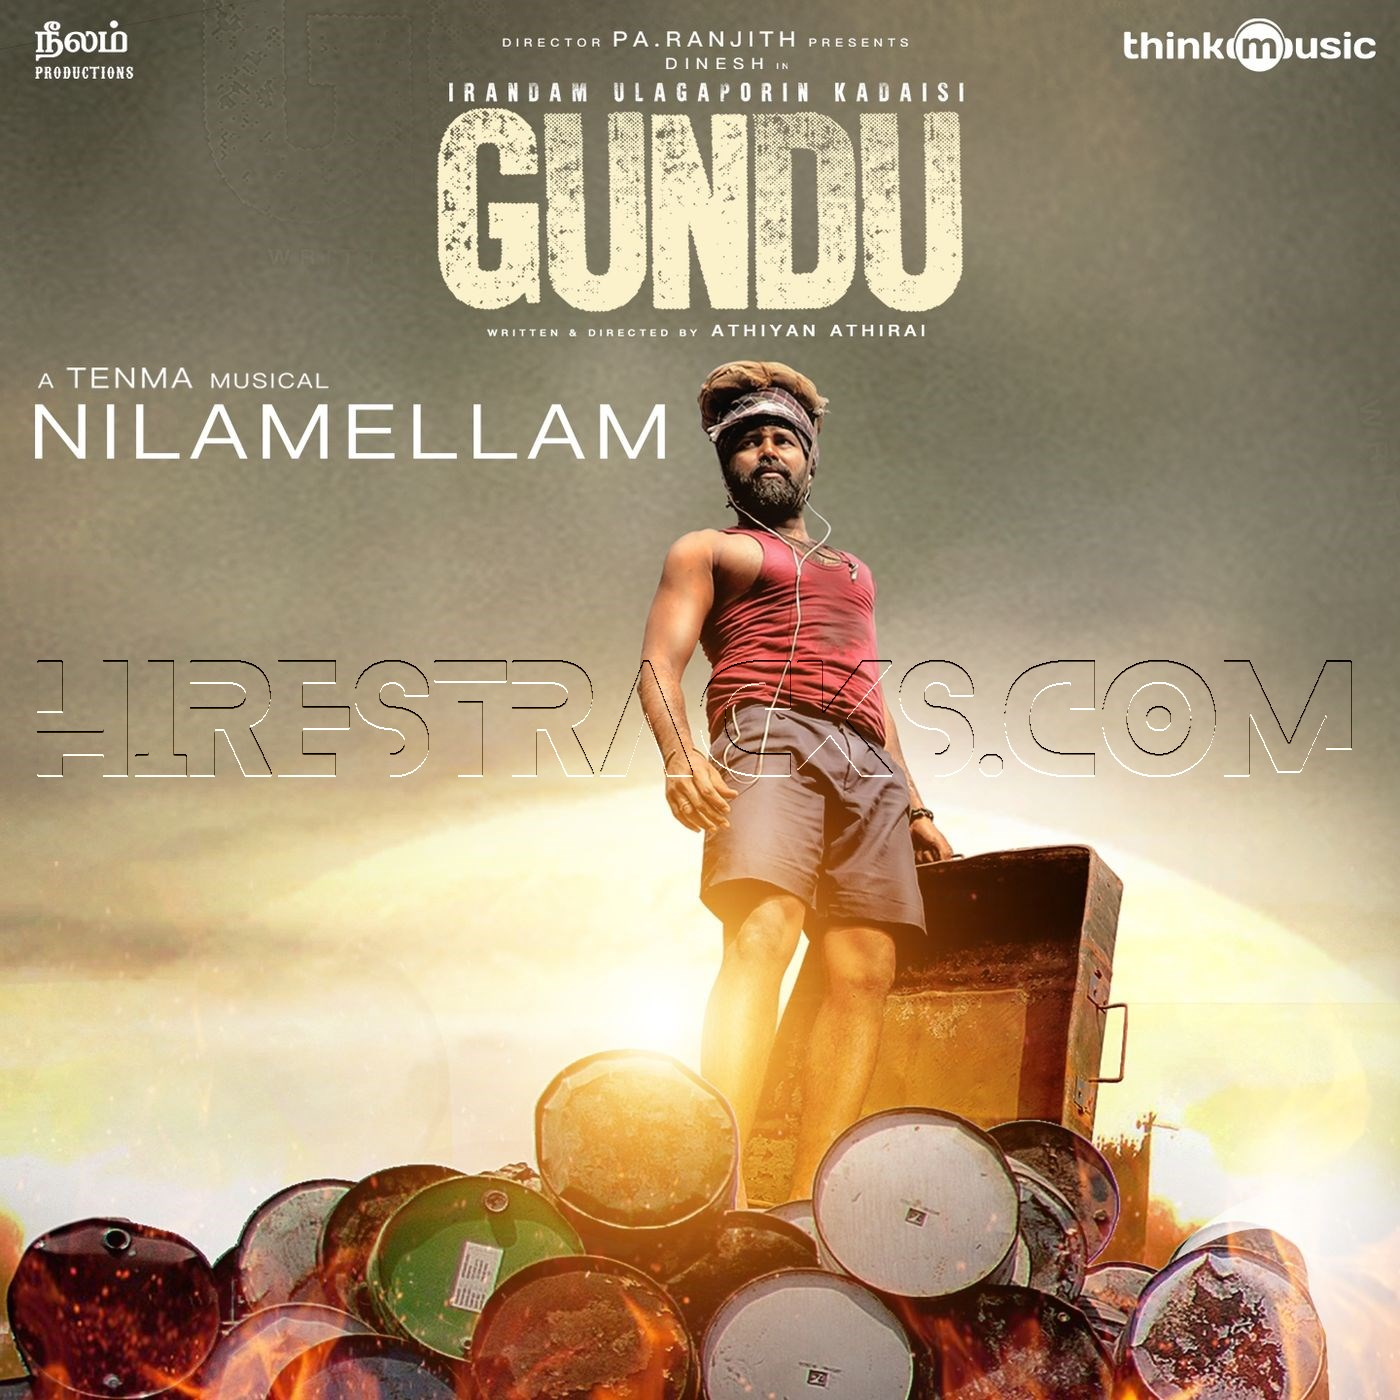 Nilamellam (From Irandam Ulagaporin Kadaisi Gundu) (2019) (Tenma) (Think Music) [Digital-RIP-FLAC]